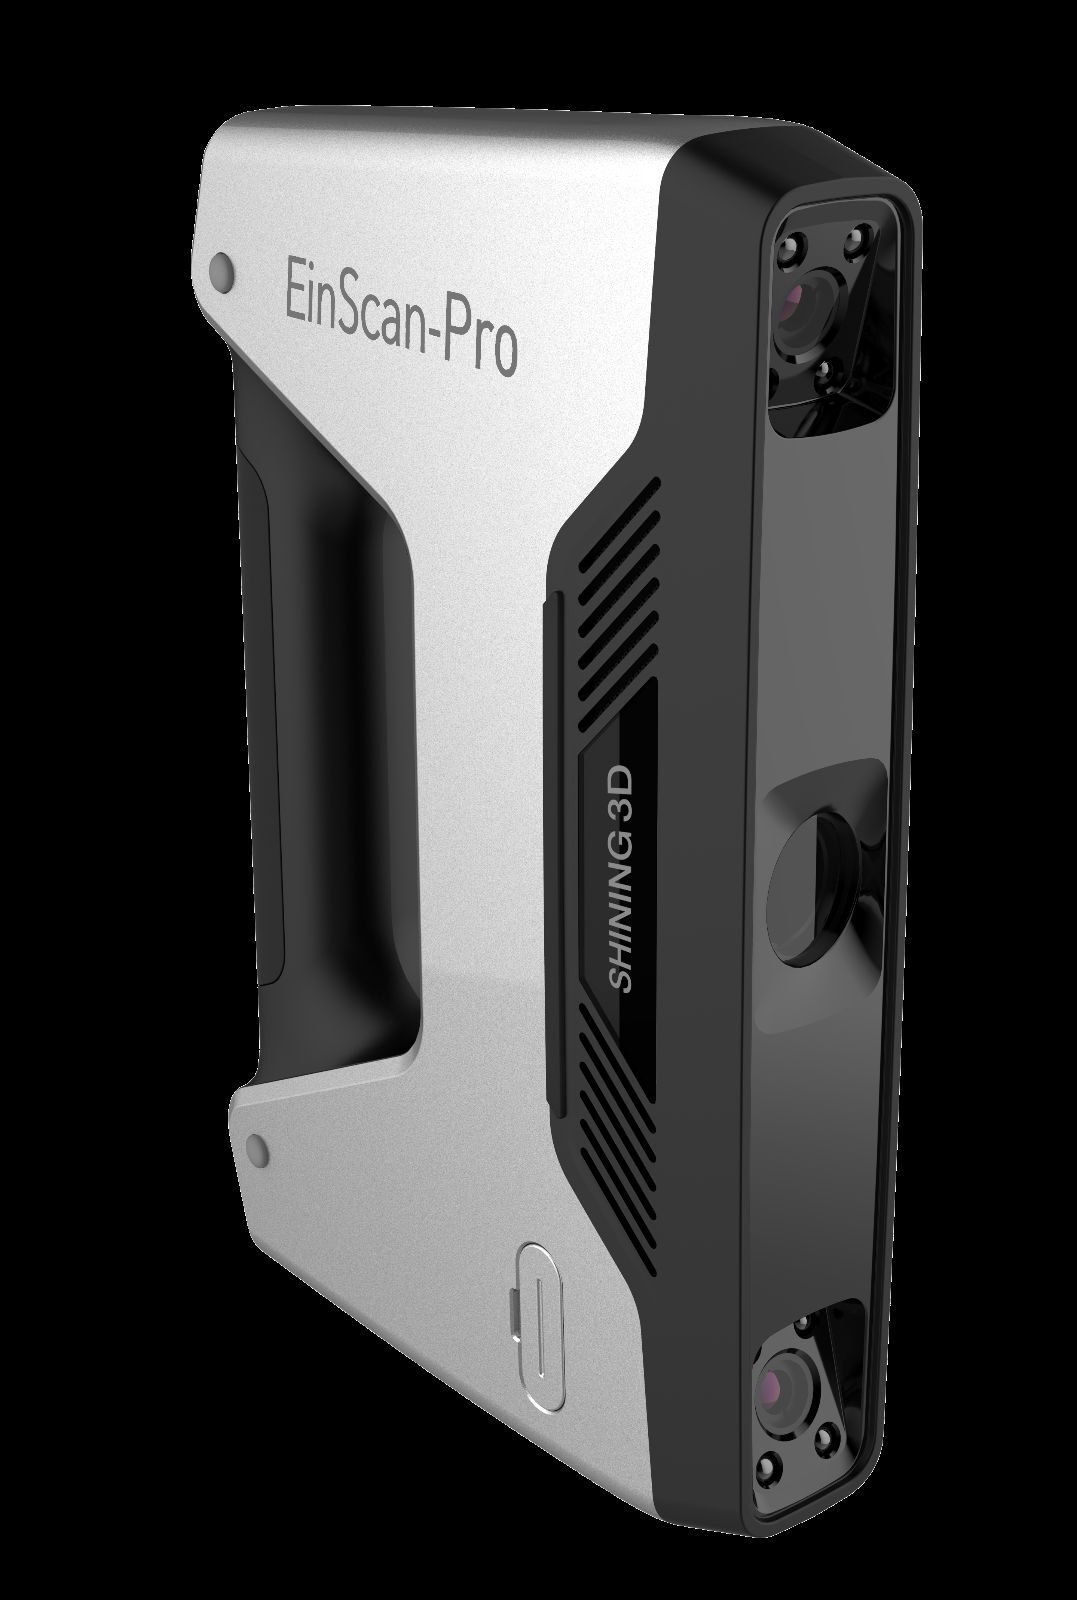 New Einscan Pro HandHeld 3D Scanner with 0.05mm Accuracy for Design Research Art